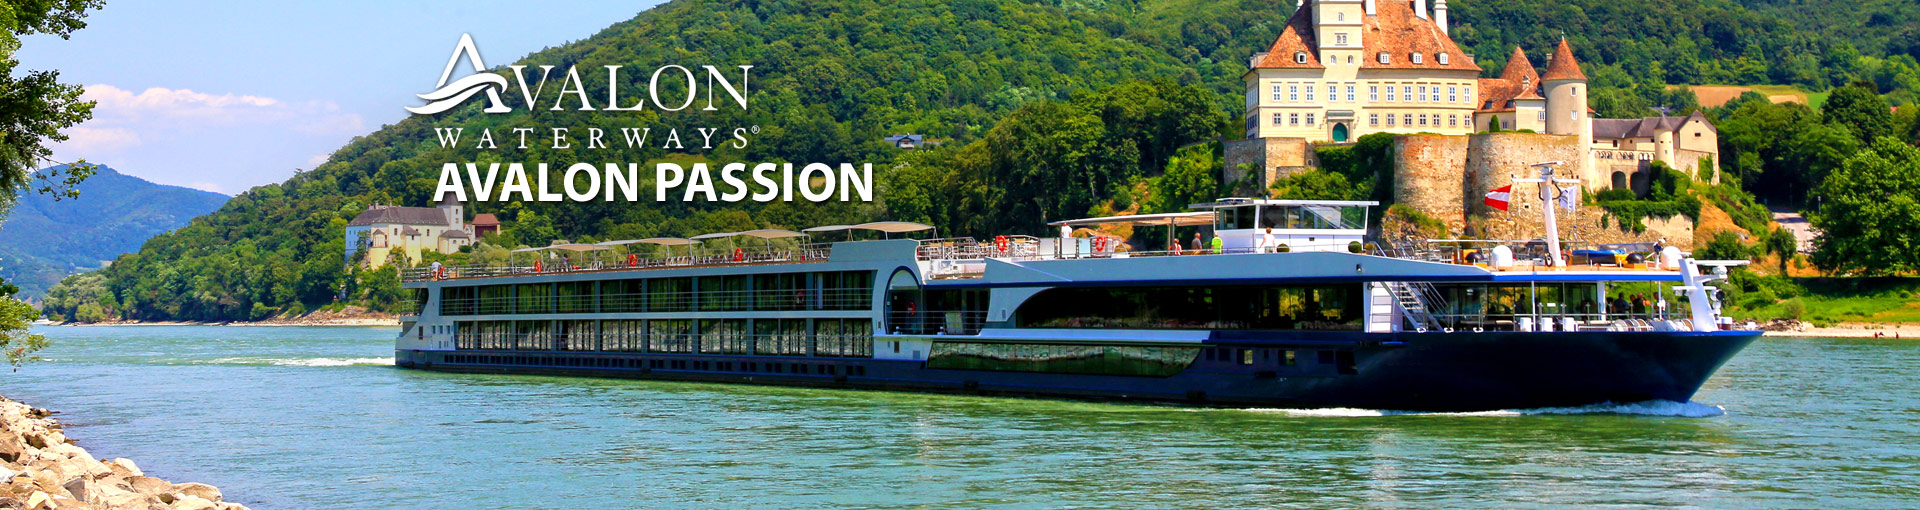 Avalon Passion River Cruise Ship